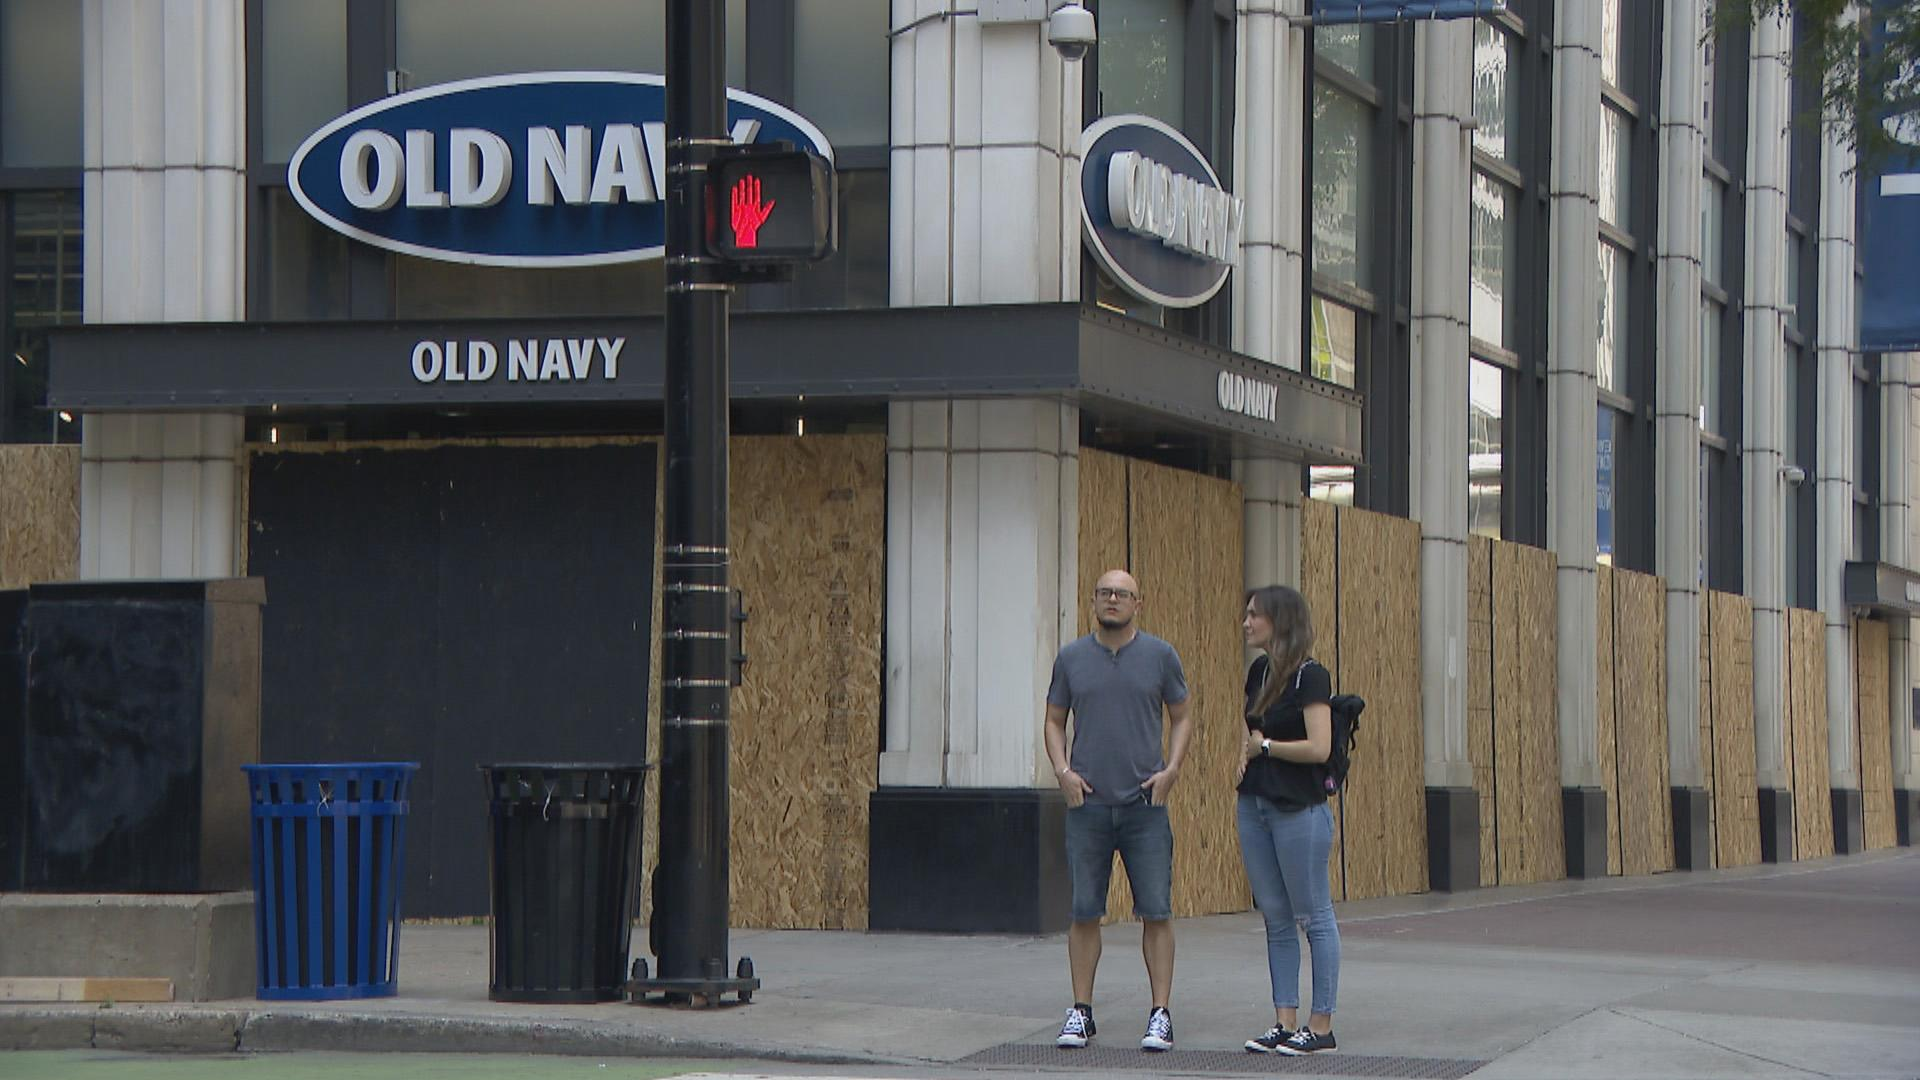 An Old Navy store in downtown Chicago is boarded up Monday, Aug. 10, 2020 after a night of looting and unrest. (WTTW News)